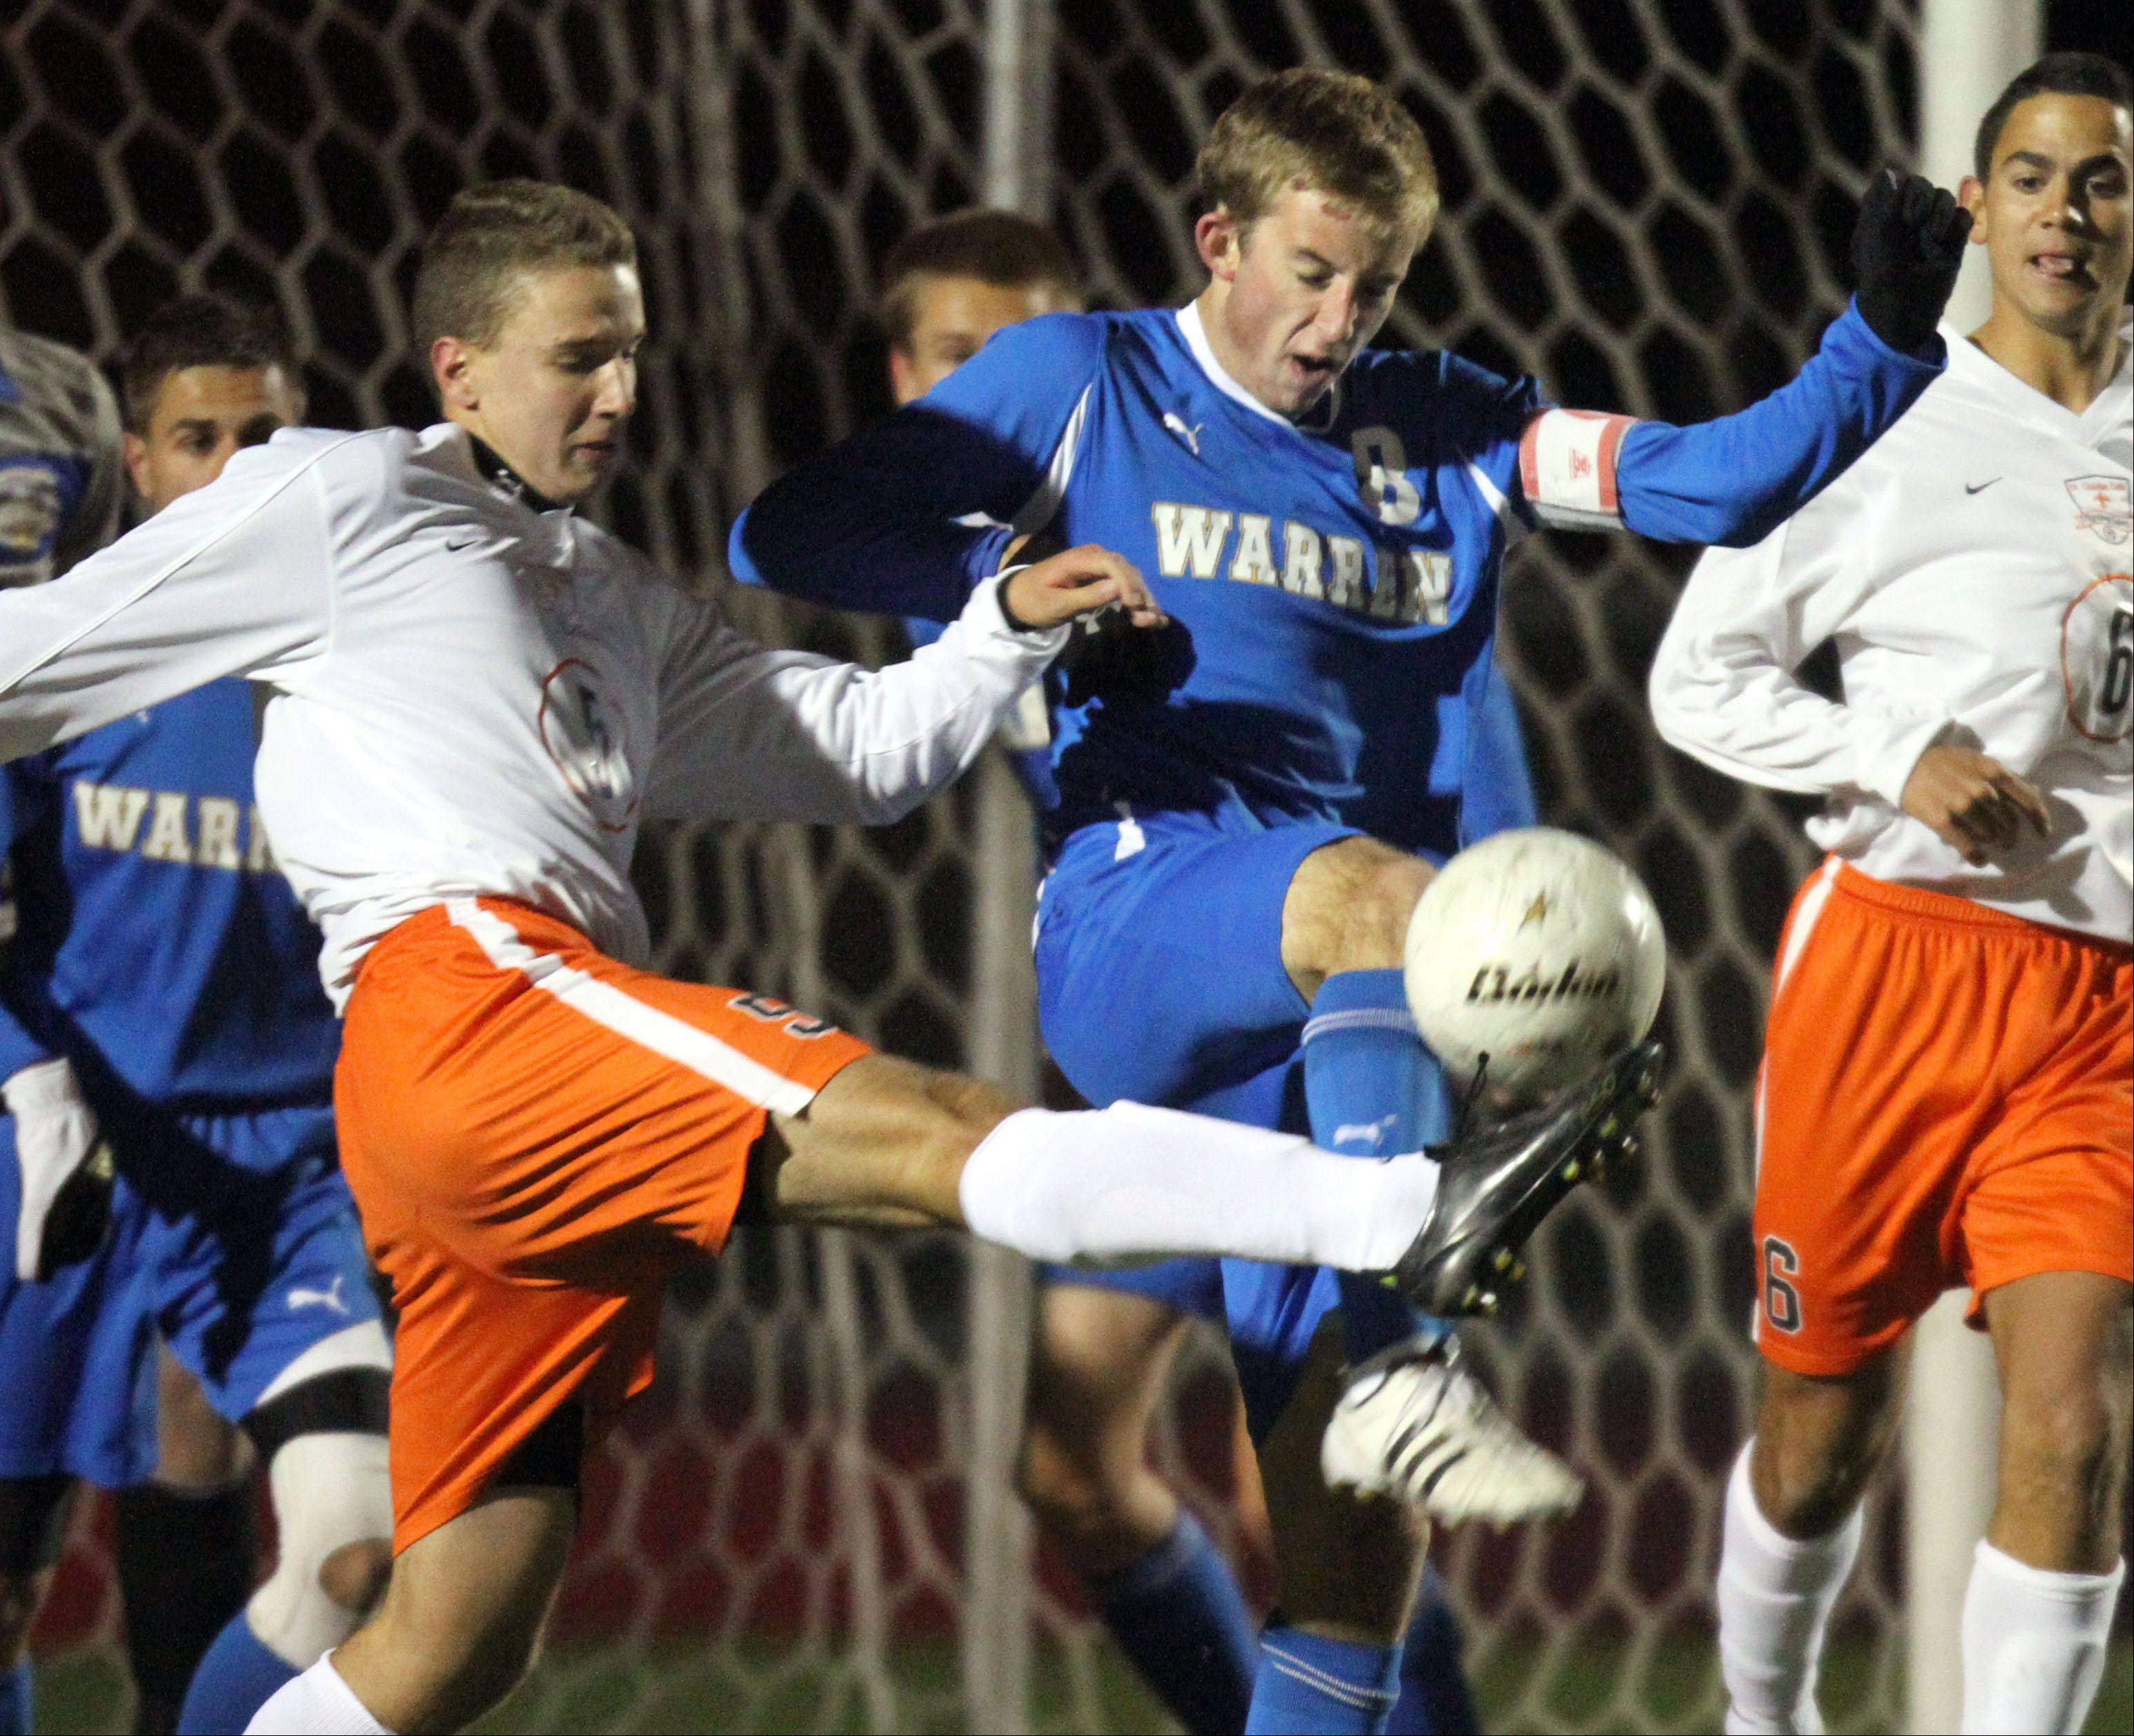 St. Charles East's Ben Womac, left, and Warren's Sean Kirwan battle for the ball during super sectional soccer action Tuesday night at Barrington High School.